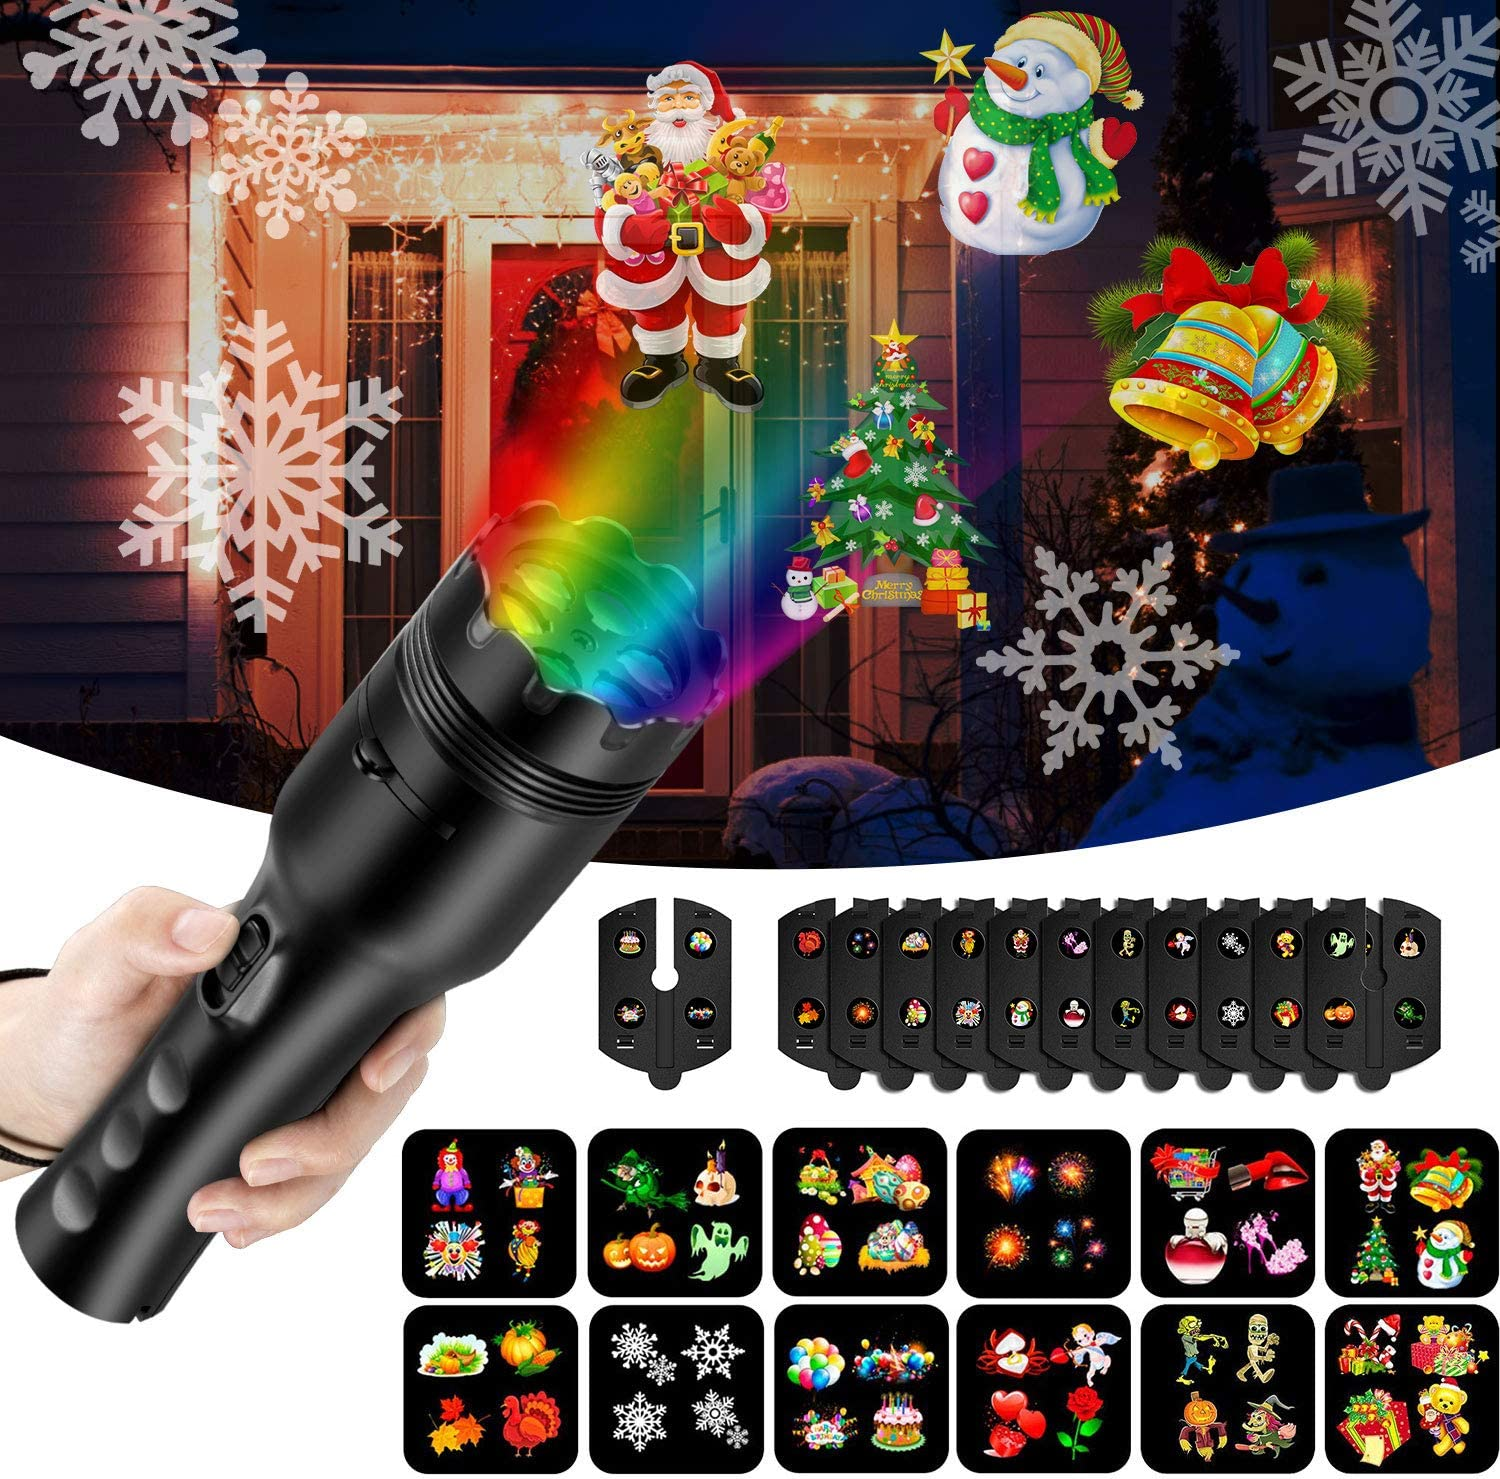 Handheld Projector Lights for Holiday Decoration,LED Projection ...